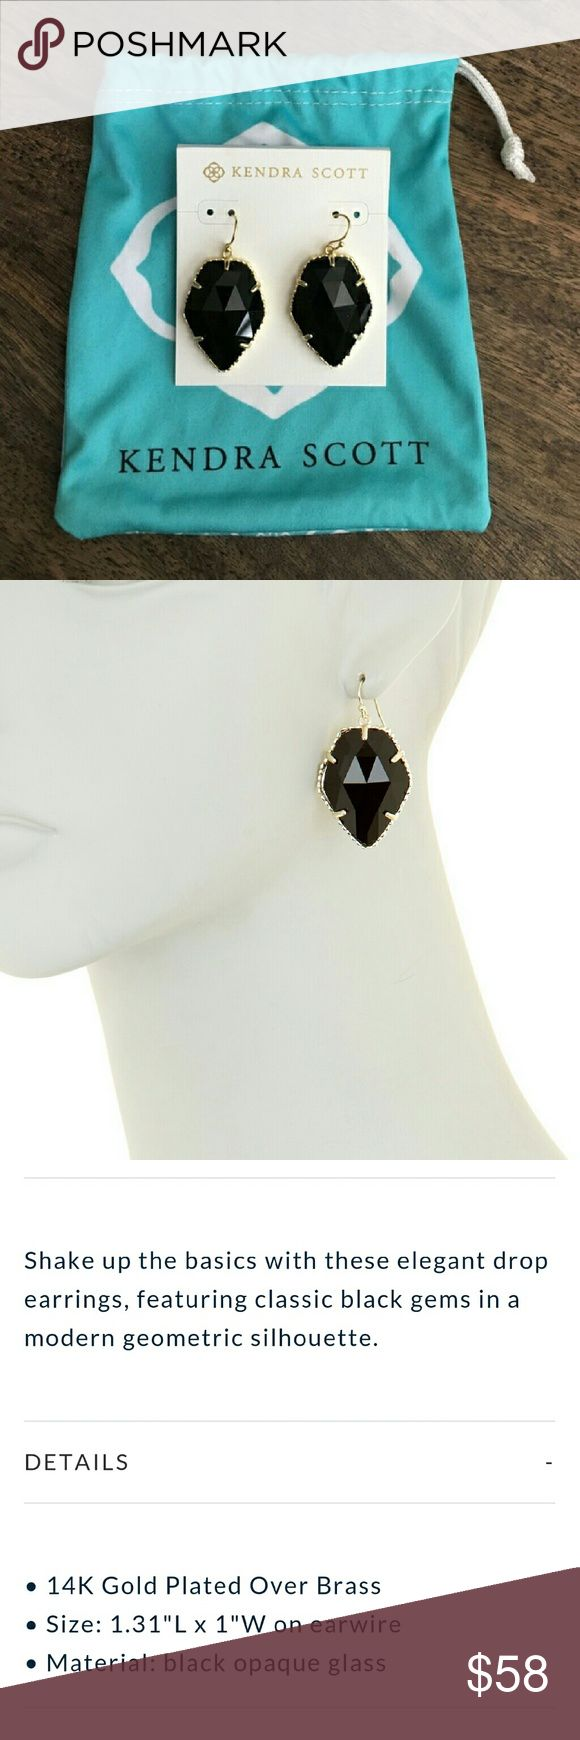 NWT $75 KENDRA SCOTT Black Gem faceted earrings!! Beautiful Kendra Scott earrings in black glass, with Gold.   Authentic Kendra Scott, brand new with tags. Retail value $75, stunning earrings....  ***Photos don't do these gems justice, the facets catch and shine in the light... they are far more gorgeous in person!***** Kendra Scott Jewelry Earrings